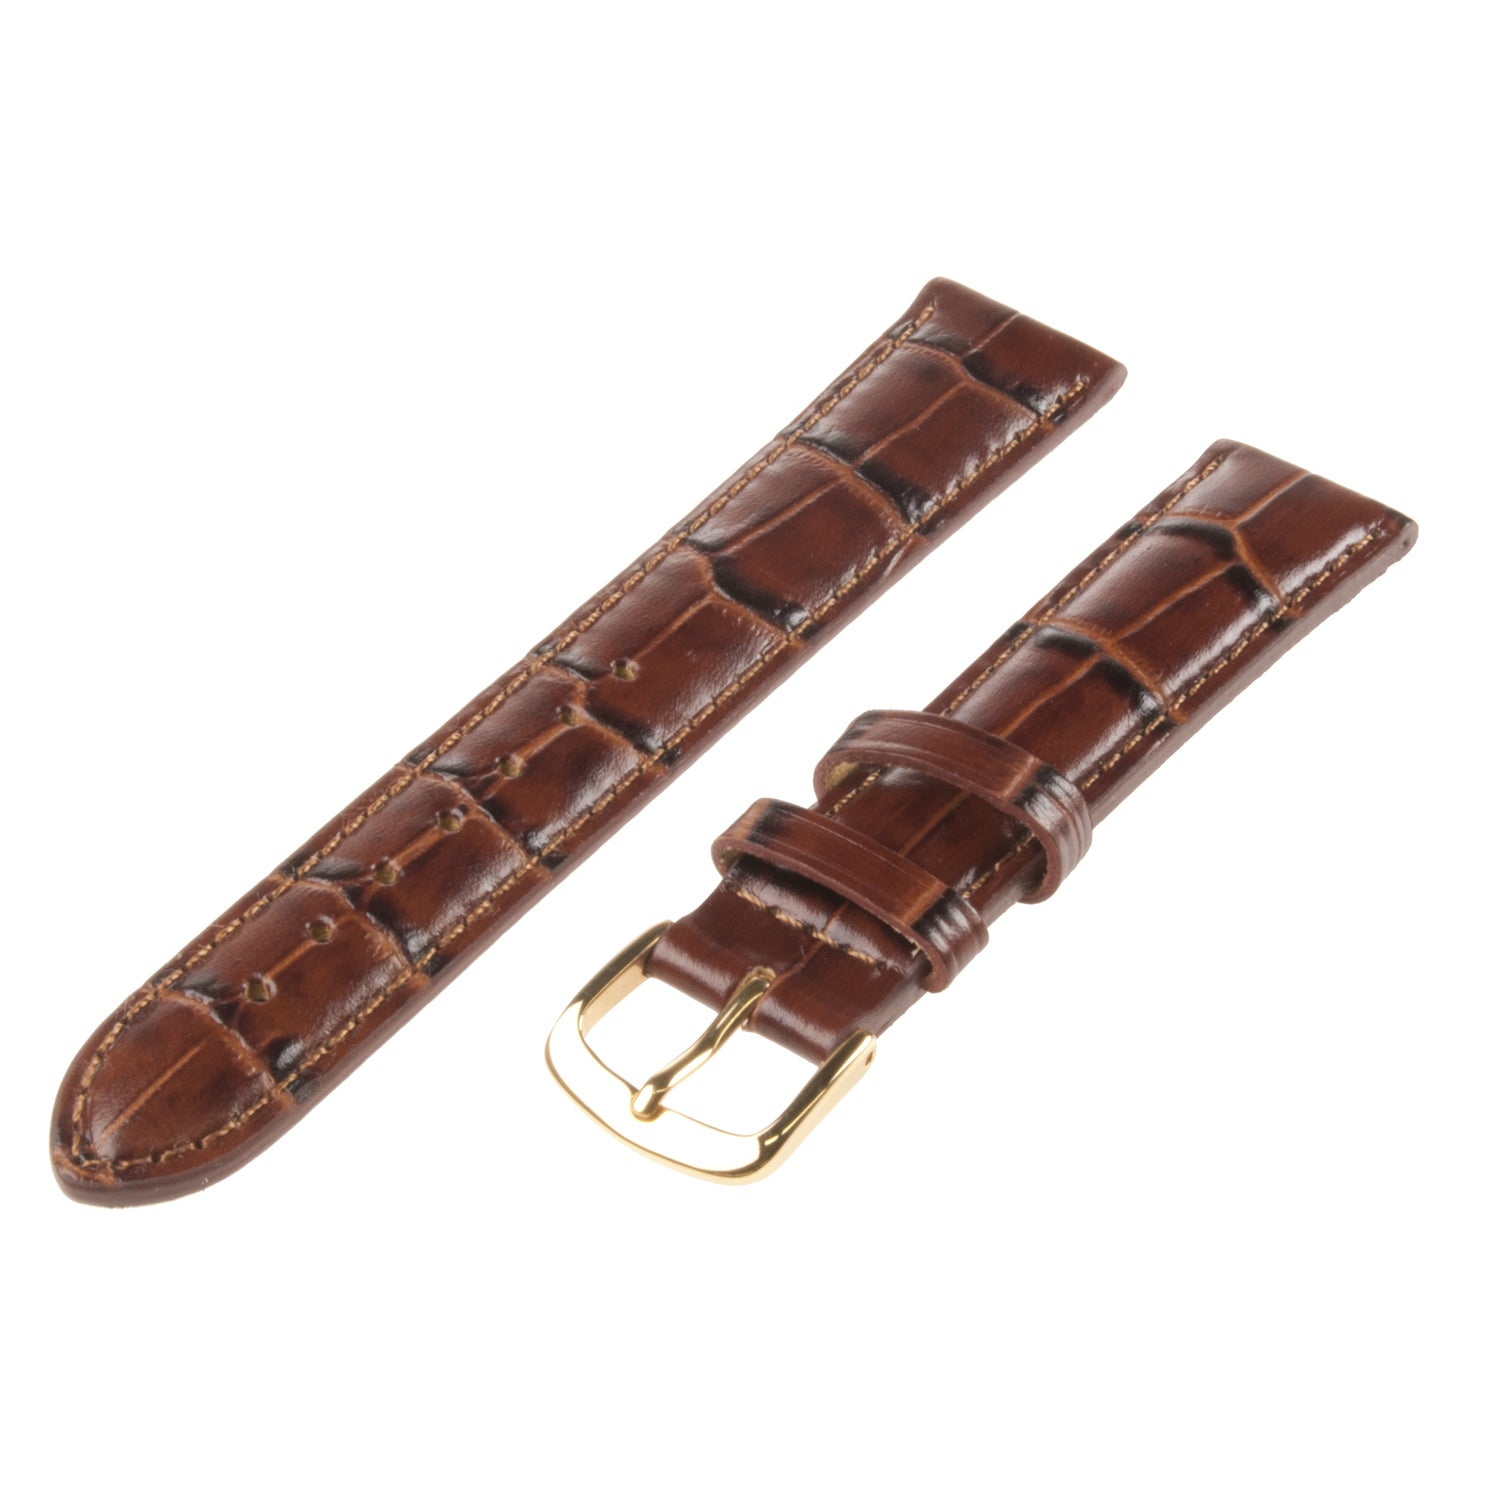 Republic Men's Italian Brown Calfskin Embossed Hypo-allergenic Watch Strap